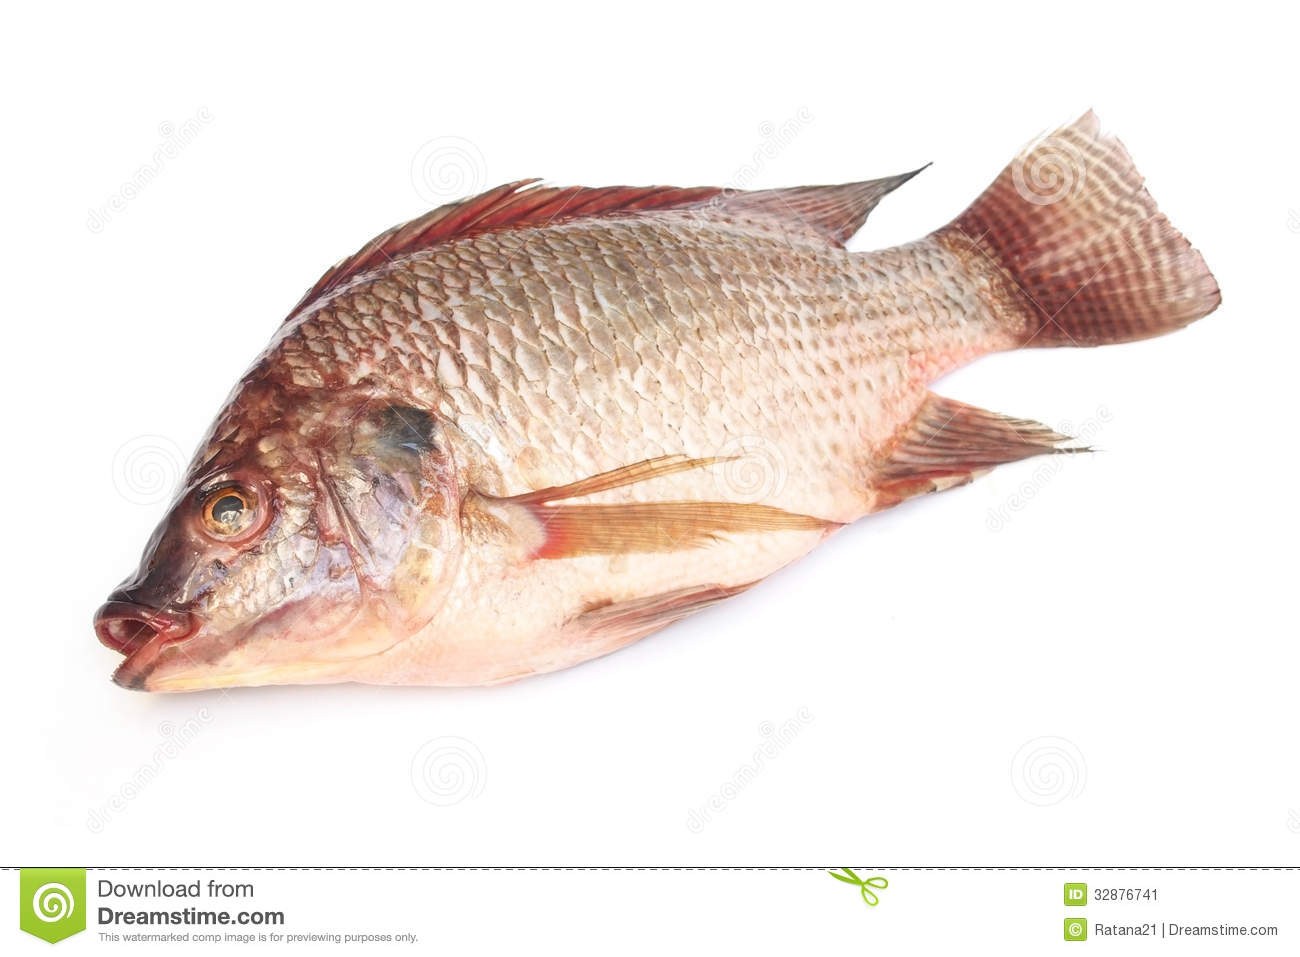 Fresh raw tilapia fish stock image image of tilapia for What type of fish is tilapia